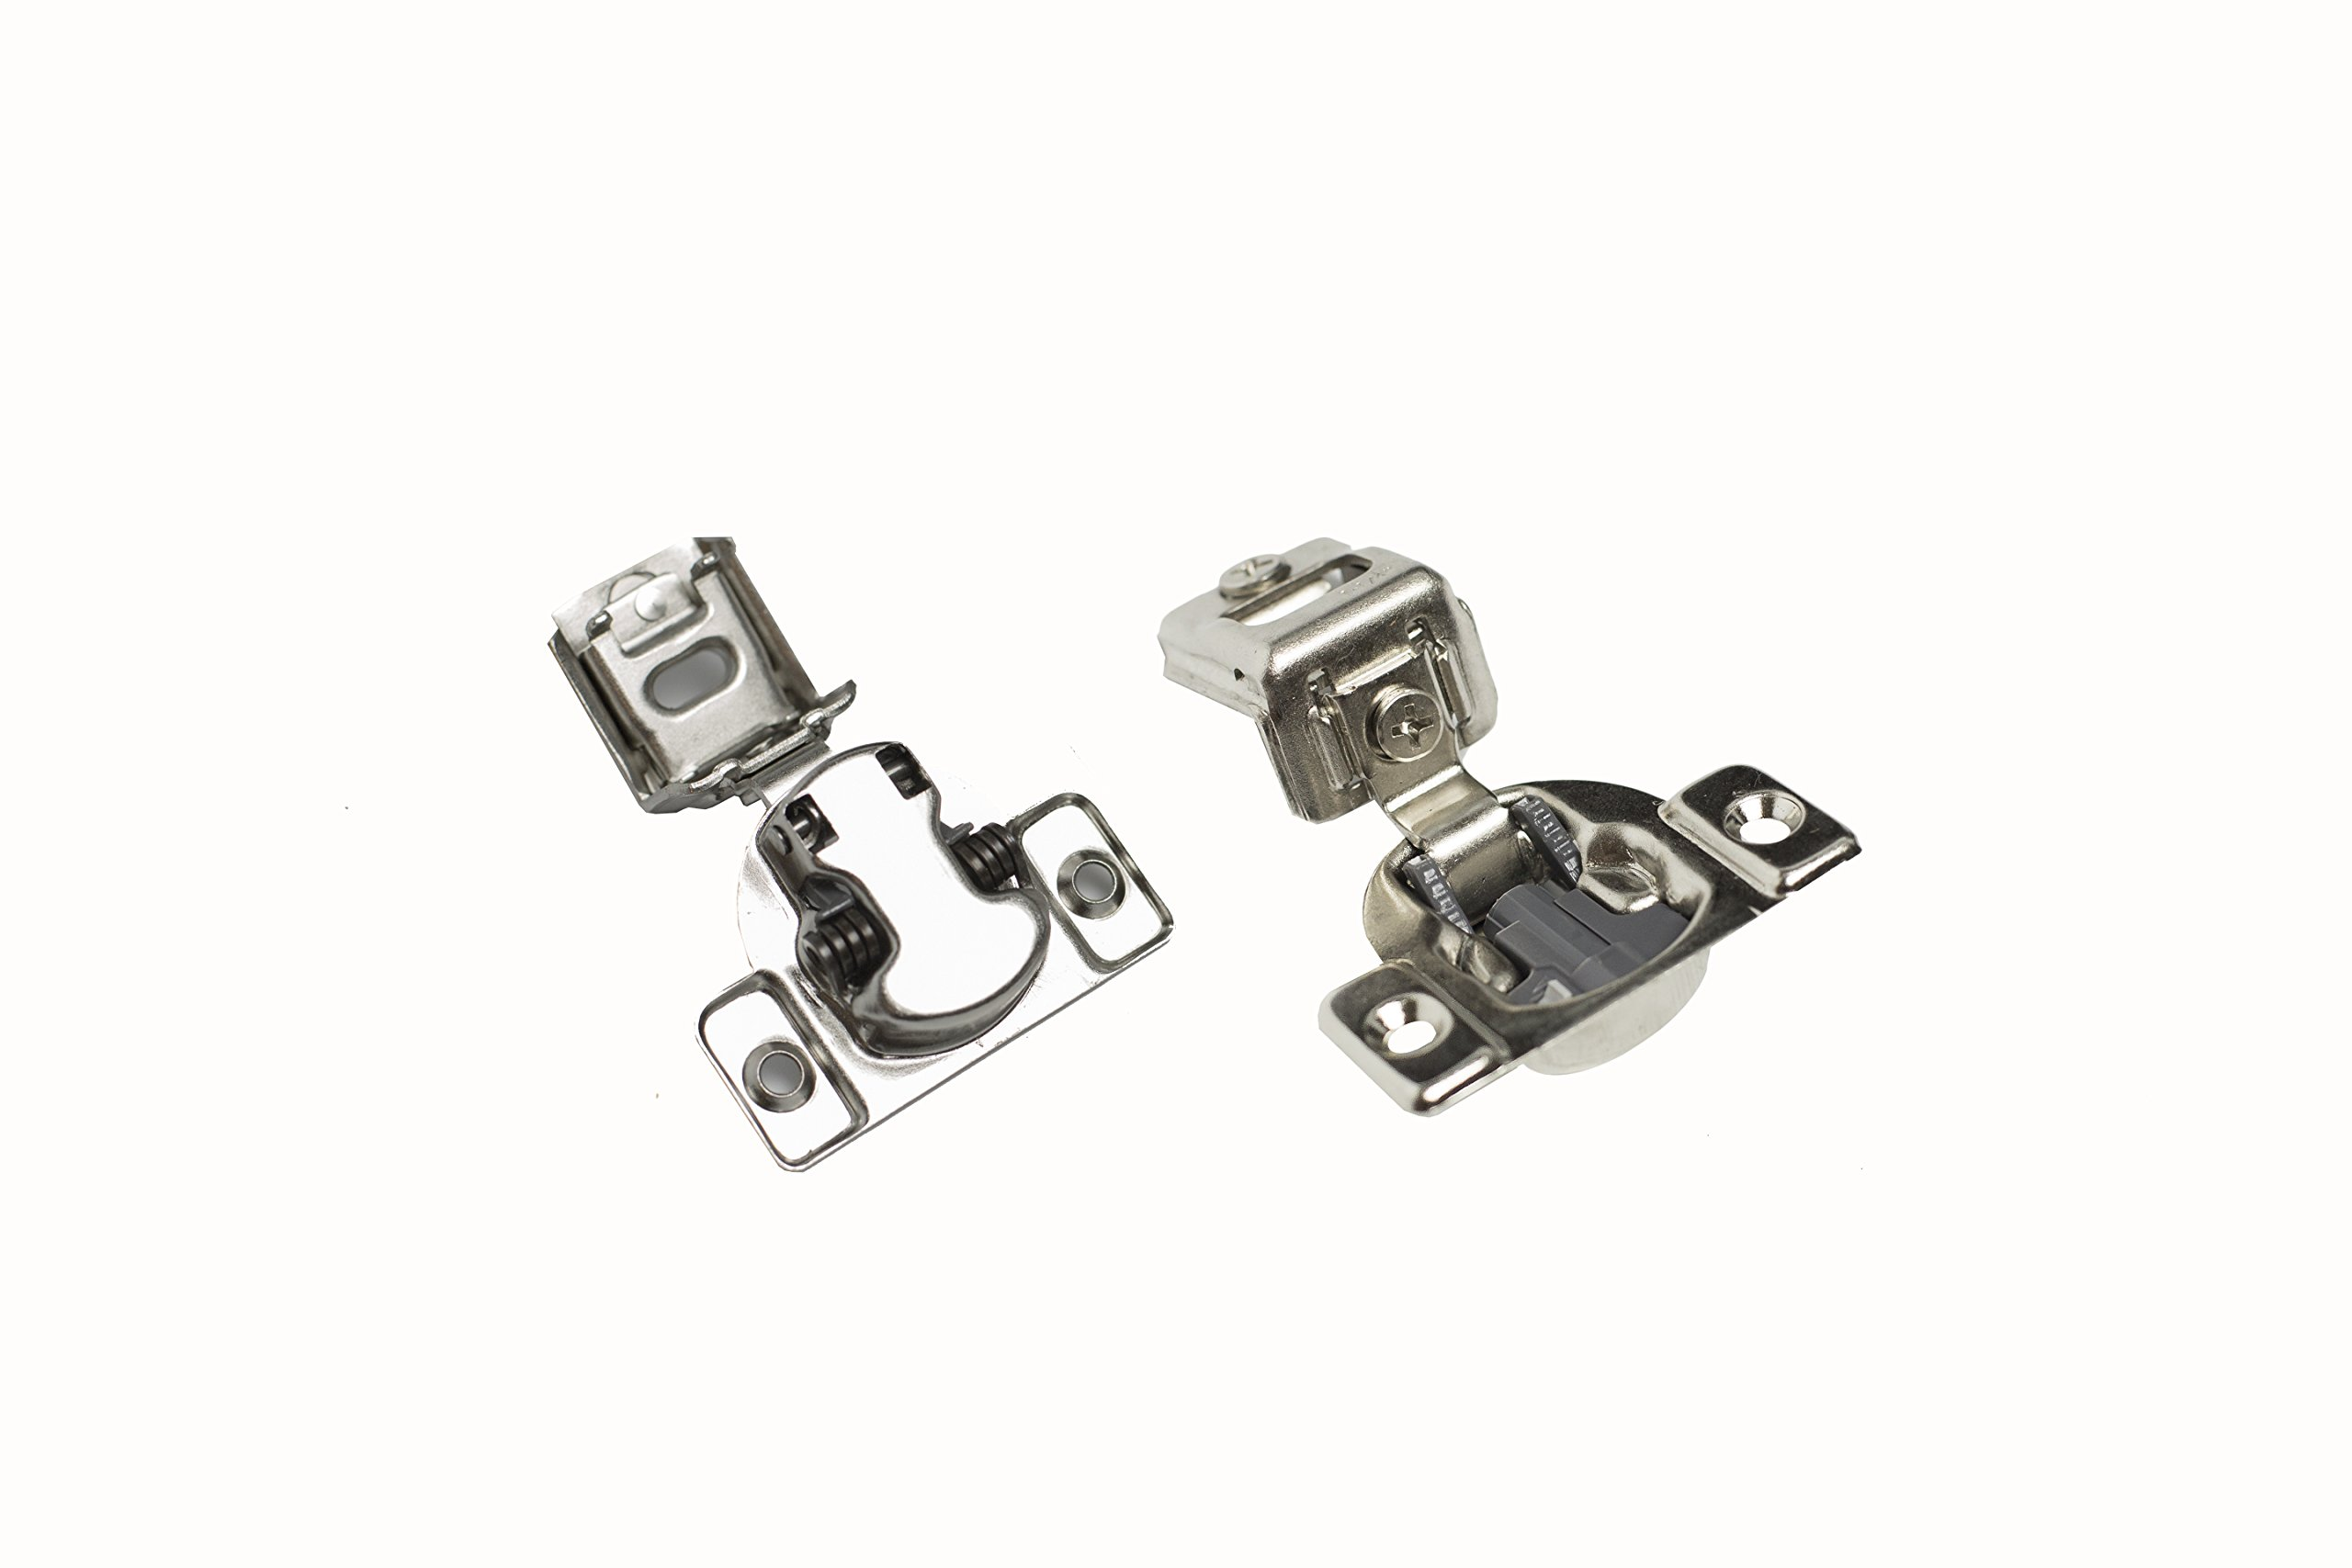 Comet Pro Hardware E55 1-1/4'' Compact Soft Close Face Frame Cabinet Door Hinges Full Overlay Nickel Plated, Screws are Included (40 Pack) by Comet Pro Hardware (Image #3)